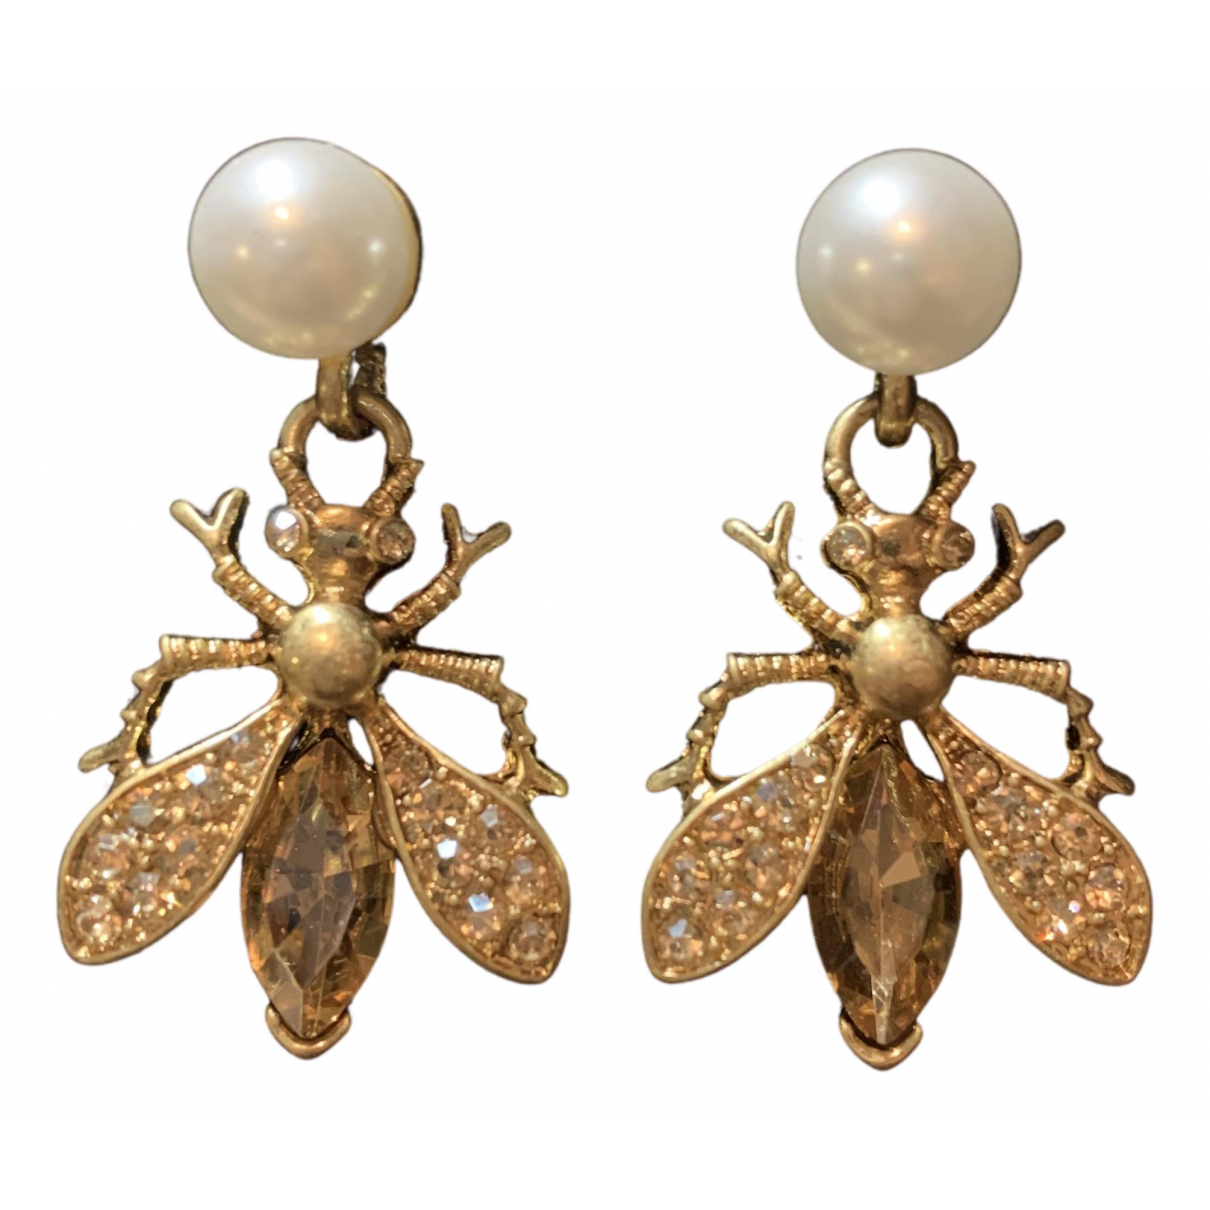 Non Signé / Unsigned Motifs Animaliers Gold Metal Earrings for Women N